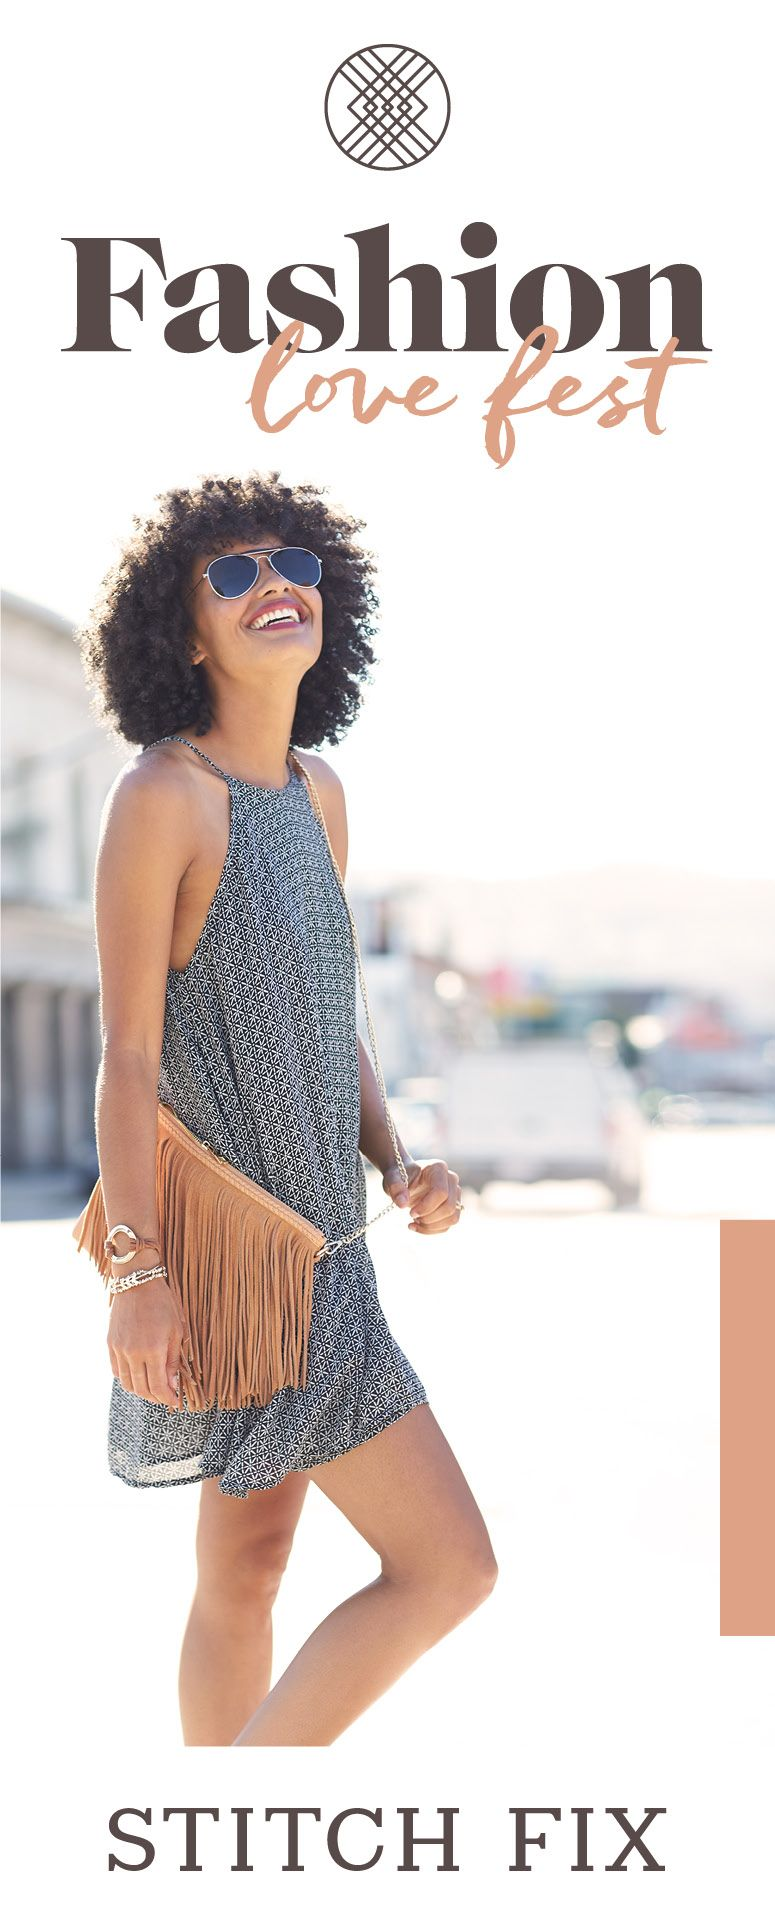 Whether you're hitting the festival circuit this summer, or just love the vibes, you can't go wrong with trendy boho looks. #StylistTip: Fringe, fringe, fringe! Sign up for Stitch Fix today to get stylist-selected, on-trend looks for every event on your calendar.